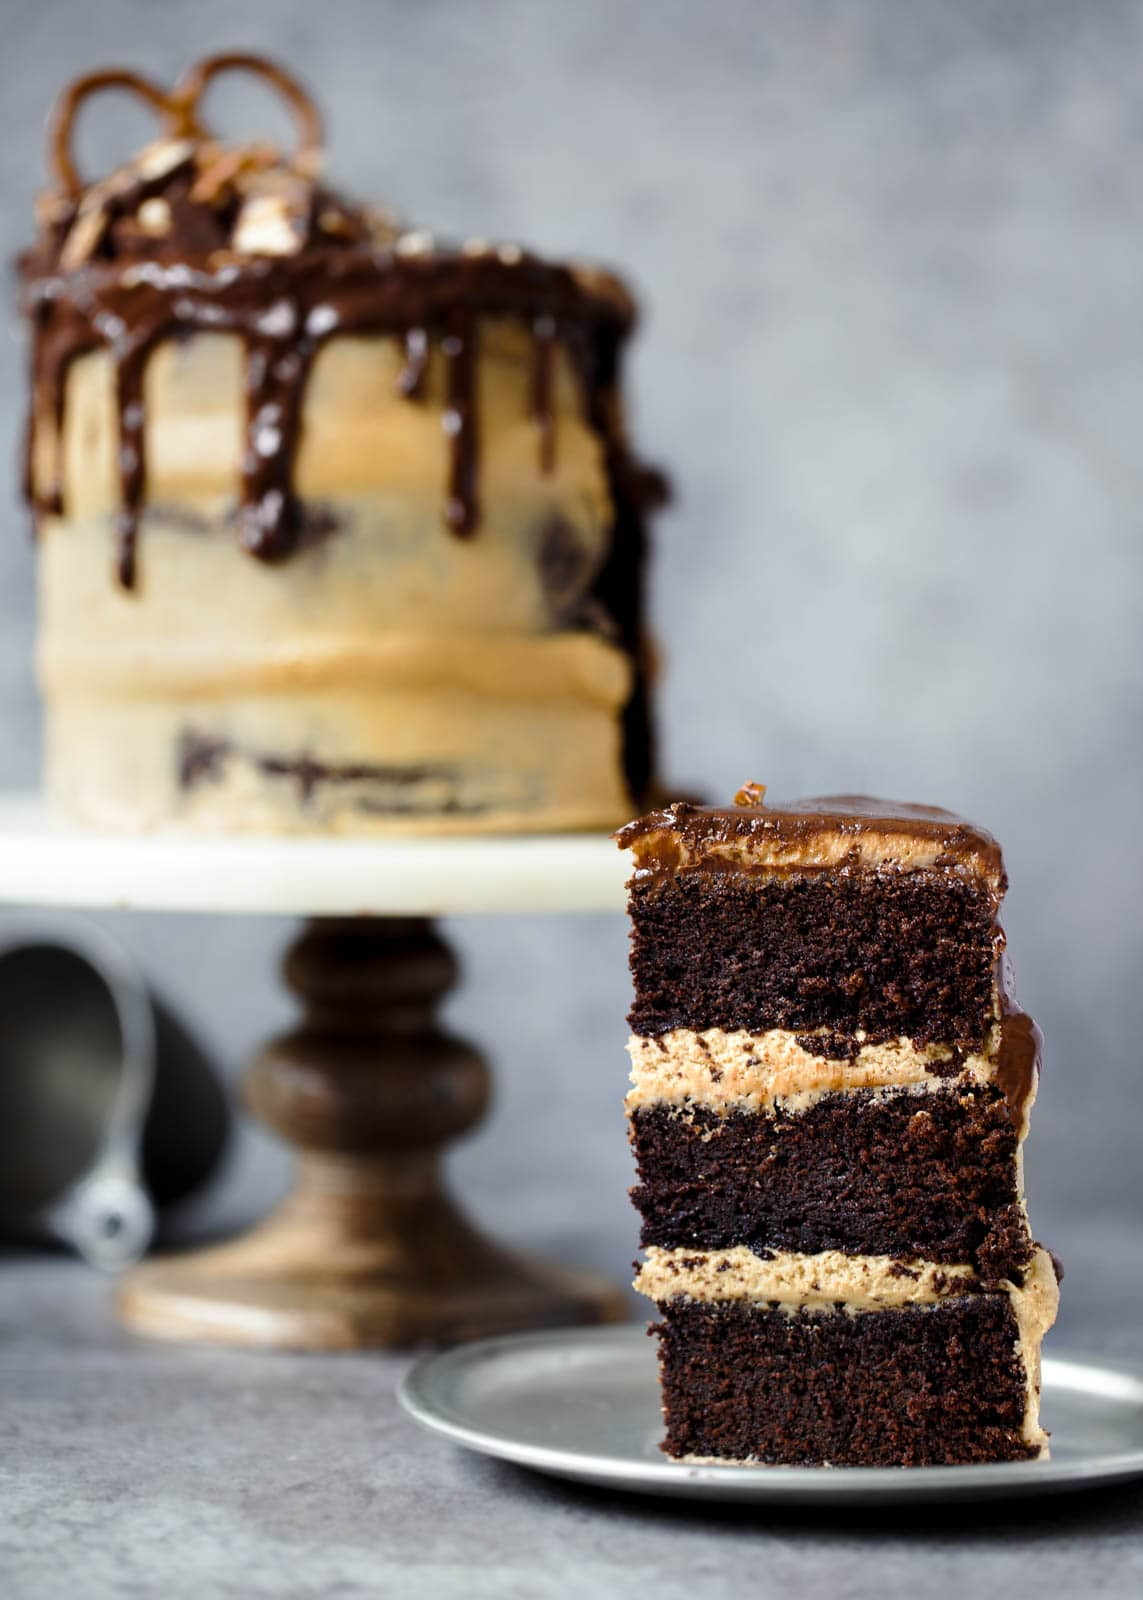 Peanut Butter Chocolate Stout Cake + What I'm Reading Lately ...